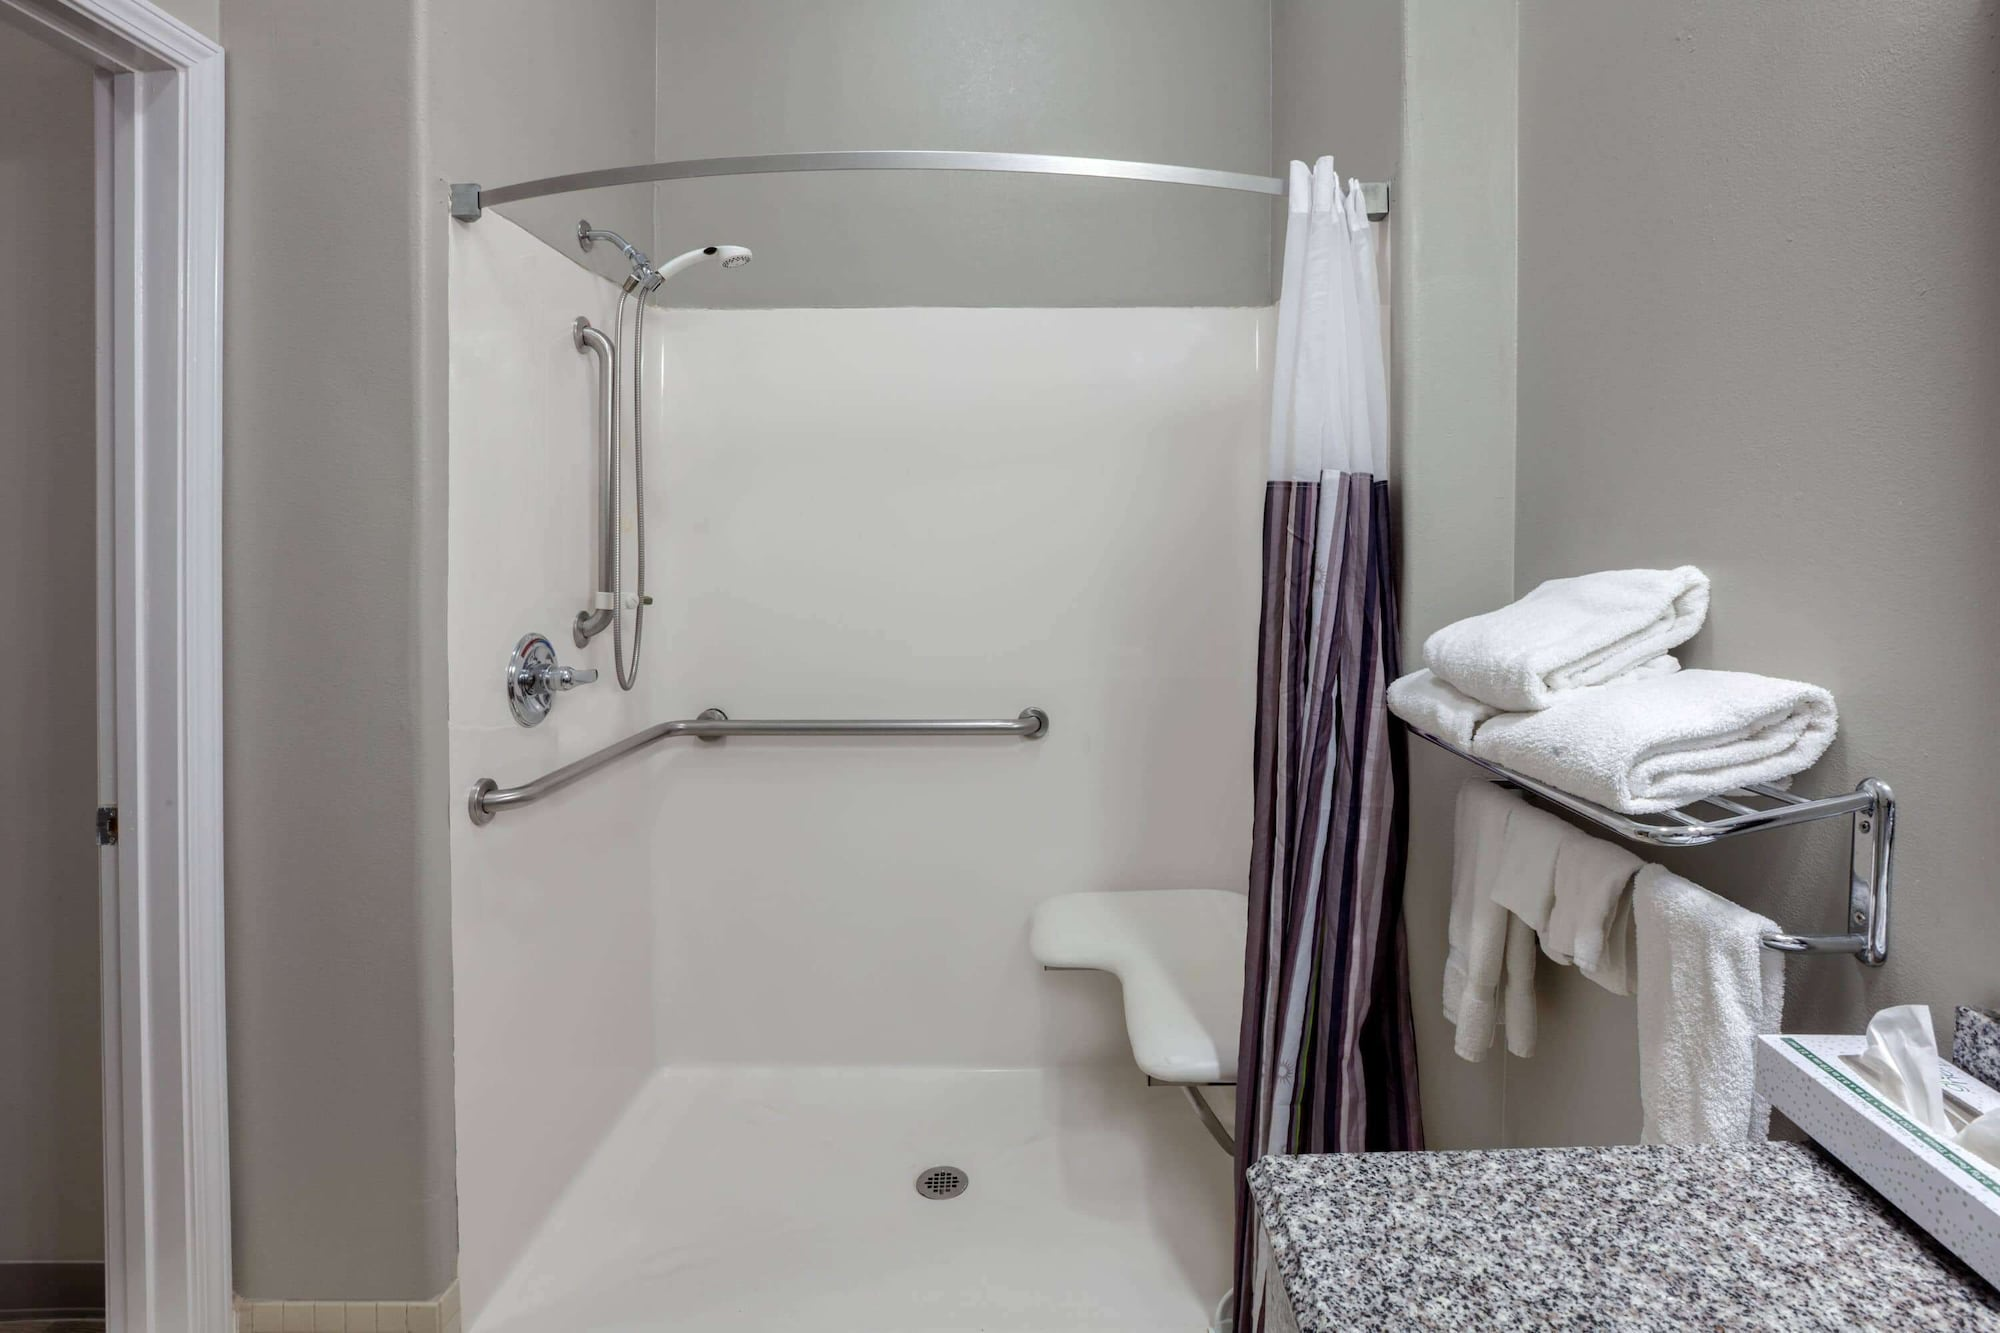 La Quinta Inn & Suites by Wyndham Cleveland TX, Liberty